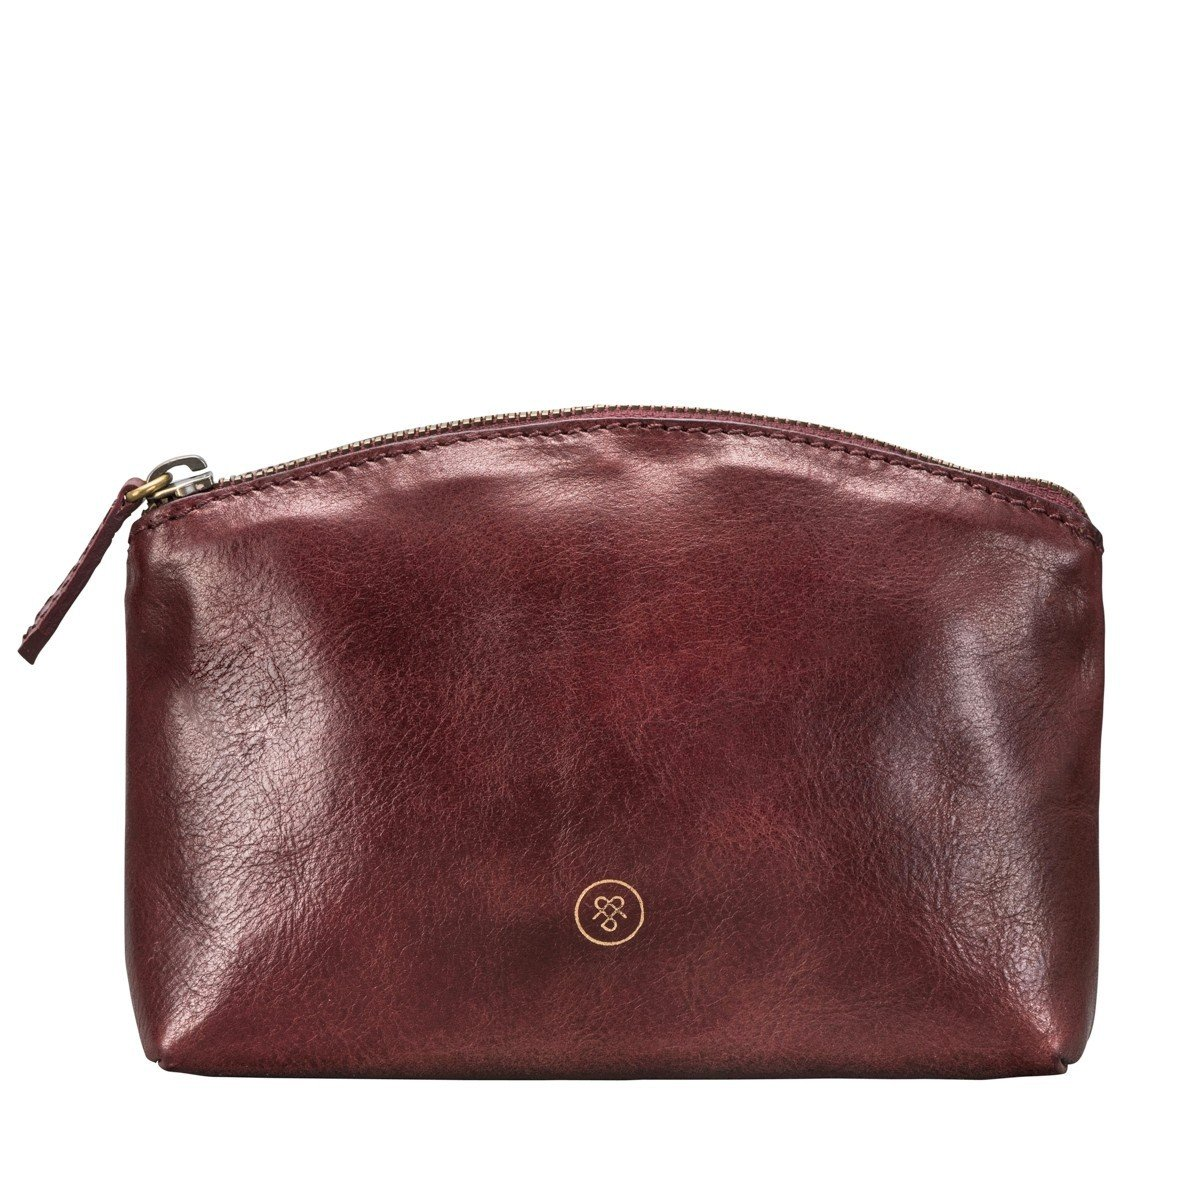 Maxwell Scott Luxury Handcrafted Italian Leather Wine Make Up Bag / Cosmetic Case (The Chia)